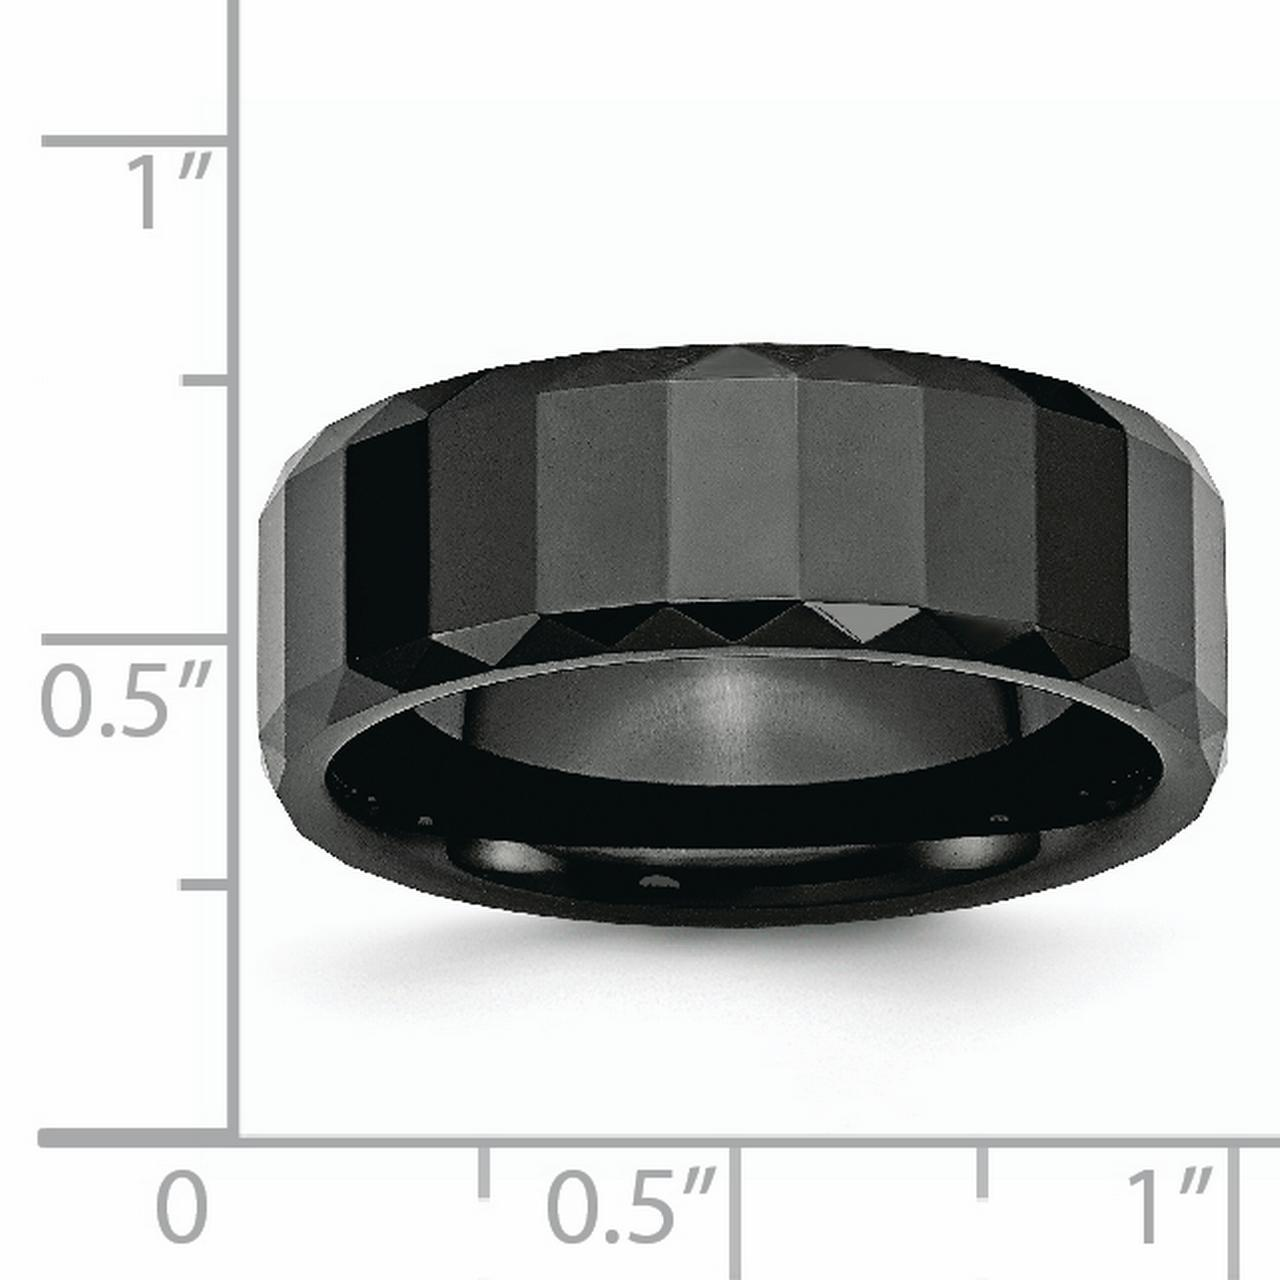 Ceramic Black Faceted 8mm Beveled Edge Wedding Ring Band Size 11.50 Fancy Fashion Jewelry Gifts For Women For Her - image 5 de 6